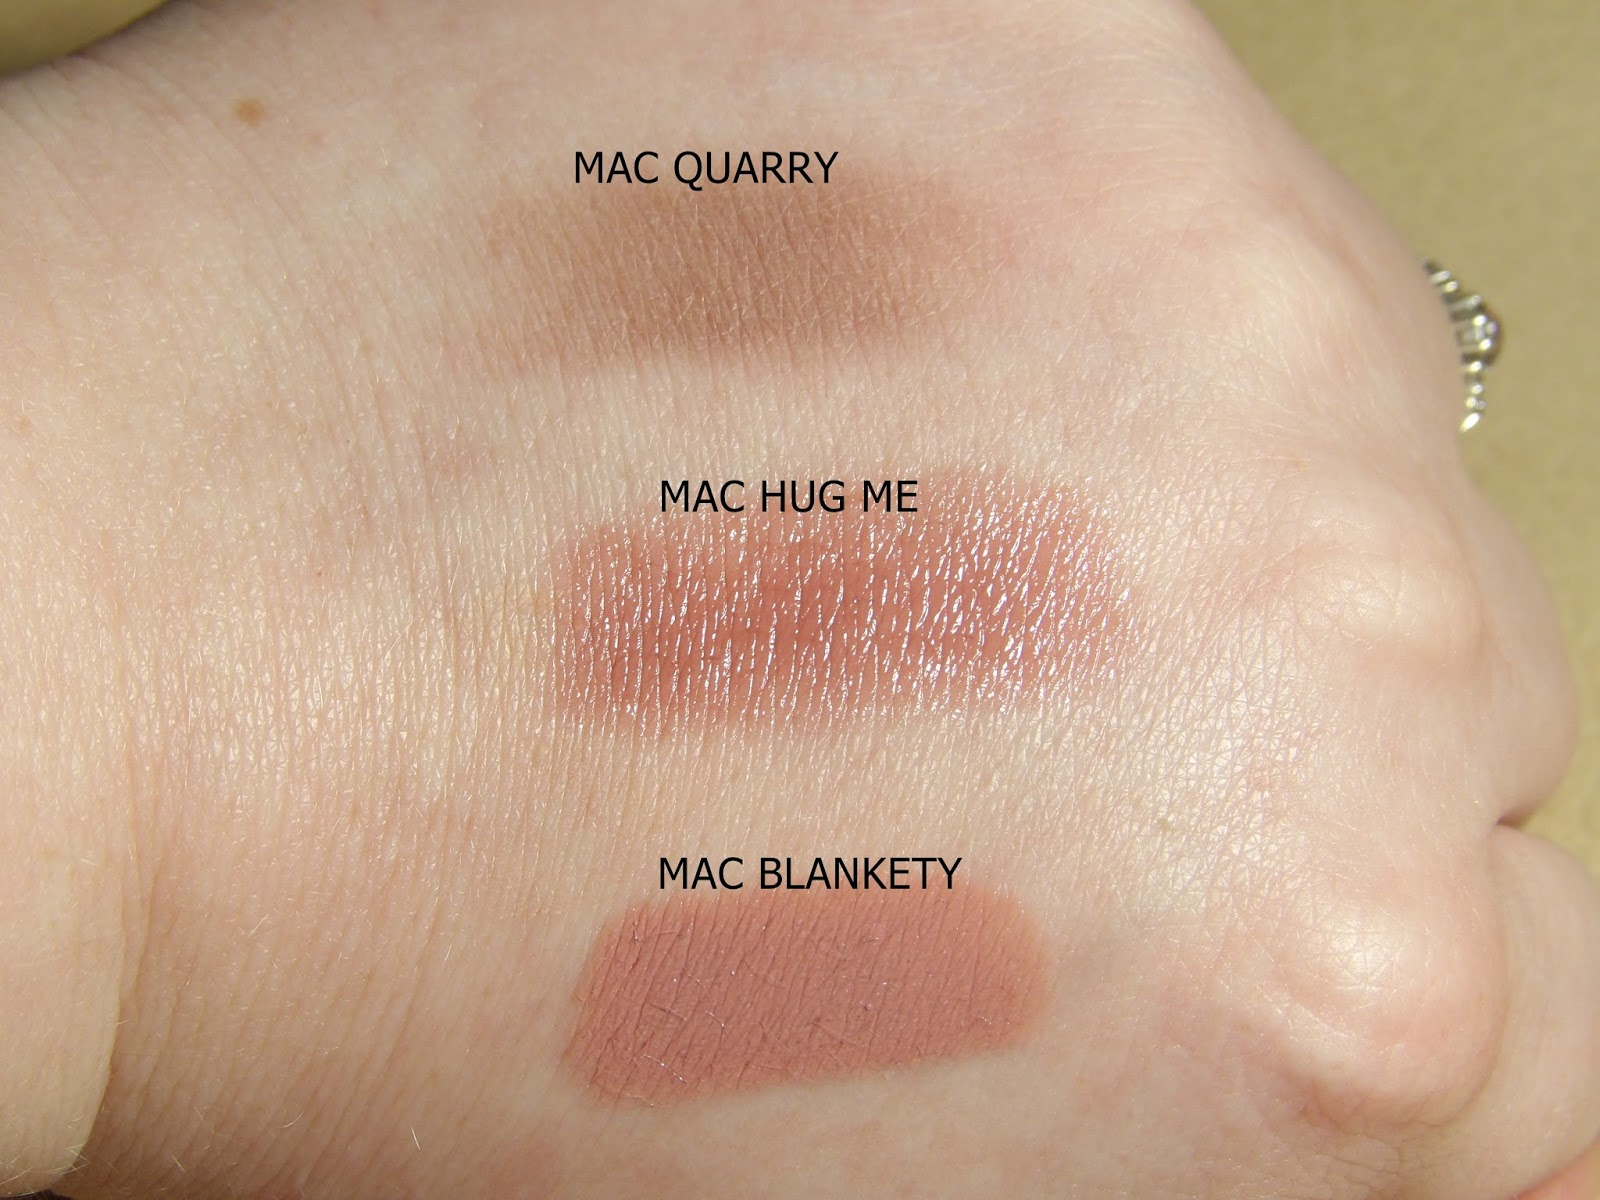 MAC'S QUARRY, HUG ME AND BLANKETY